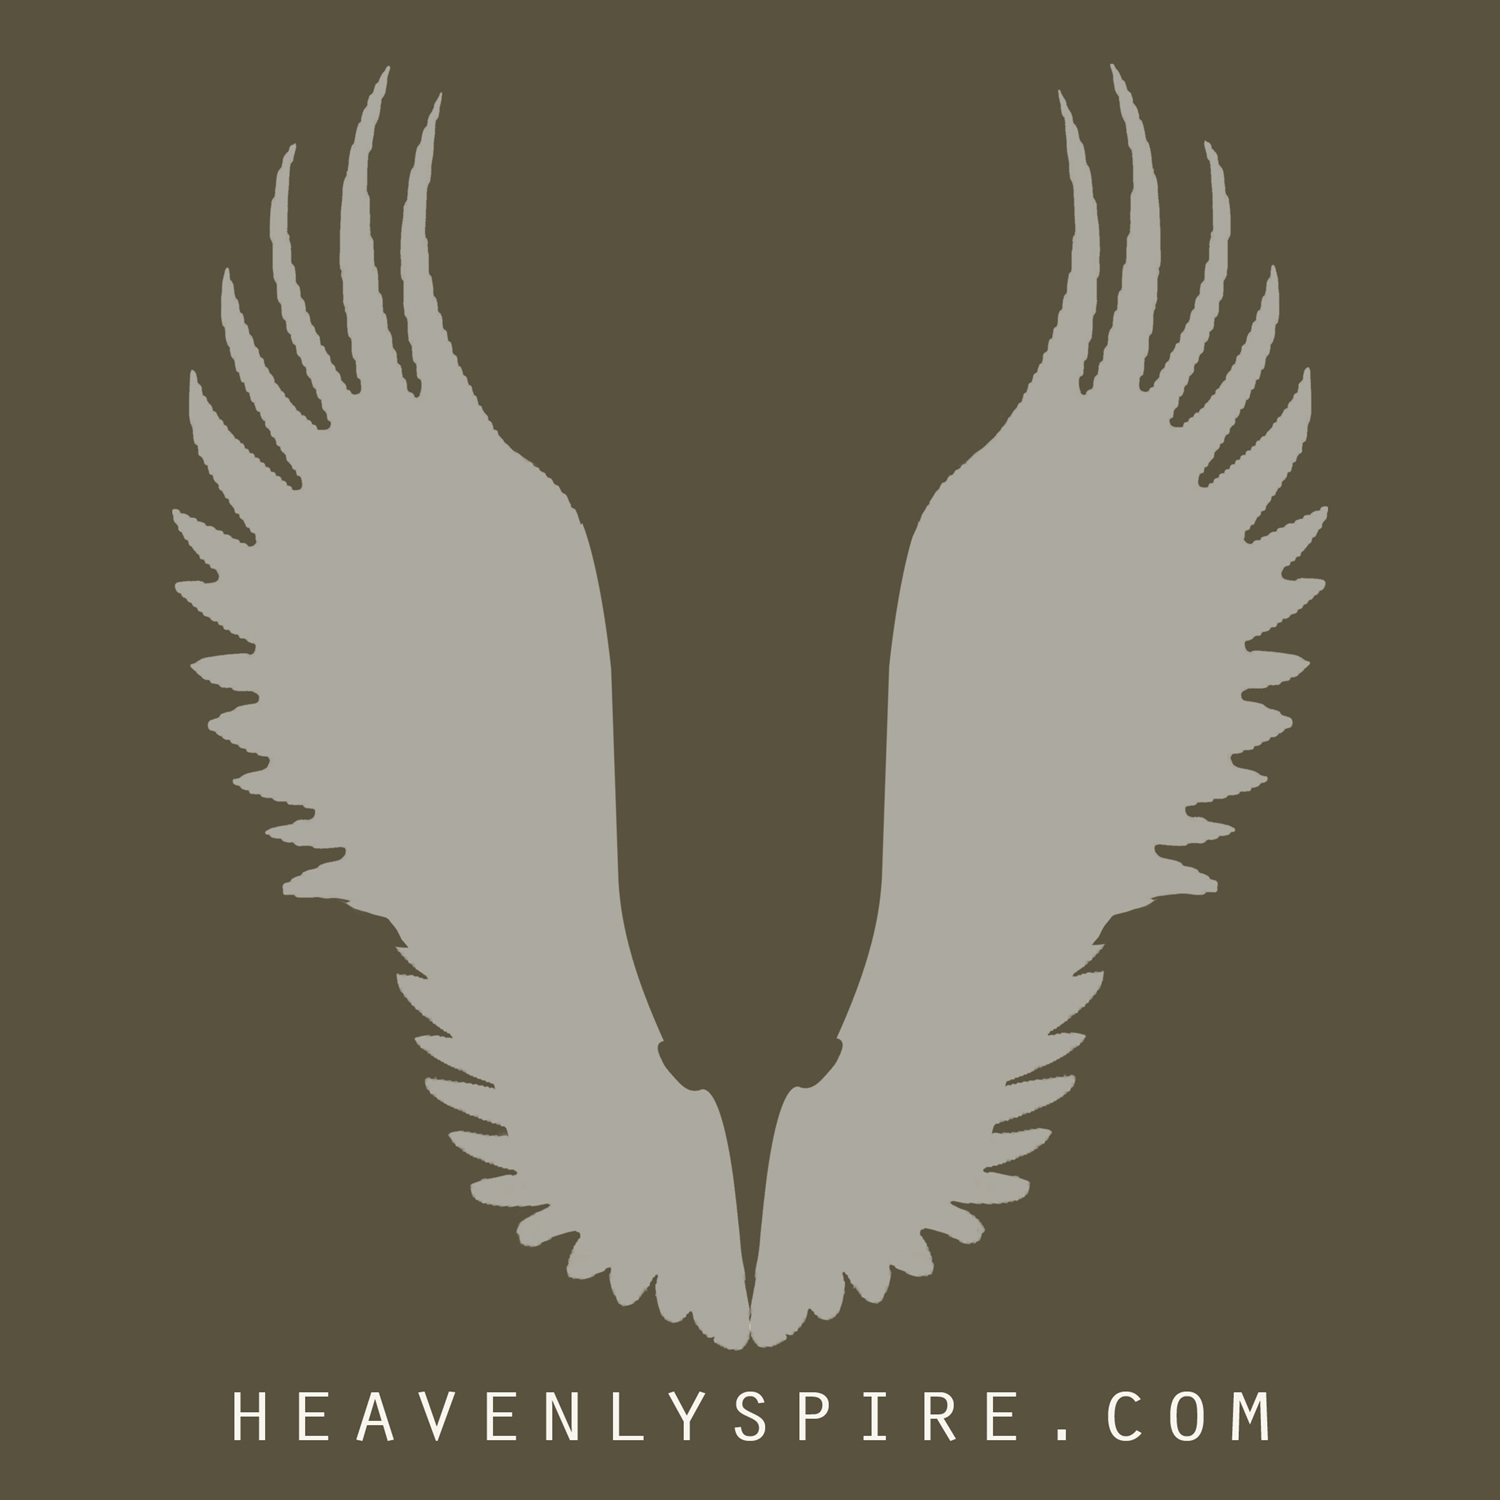 Heavenly-Spire-Logo-Web